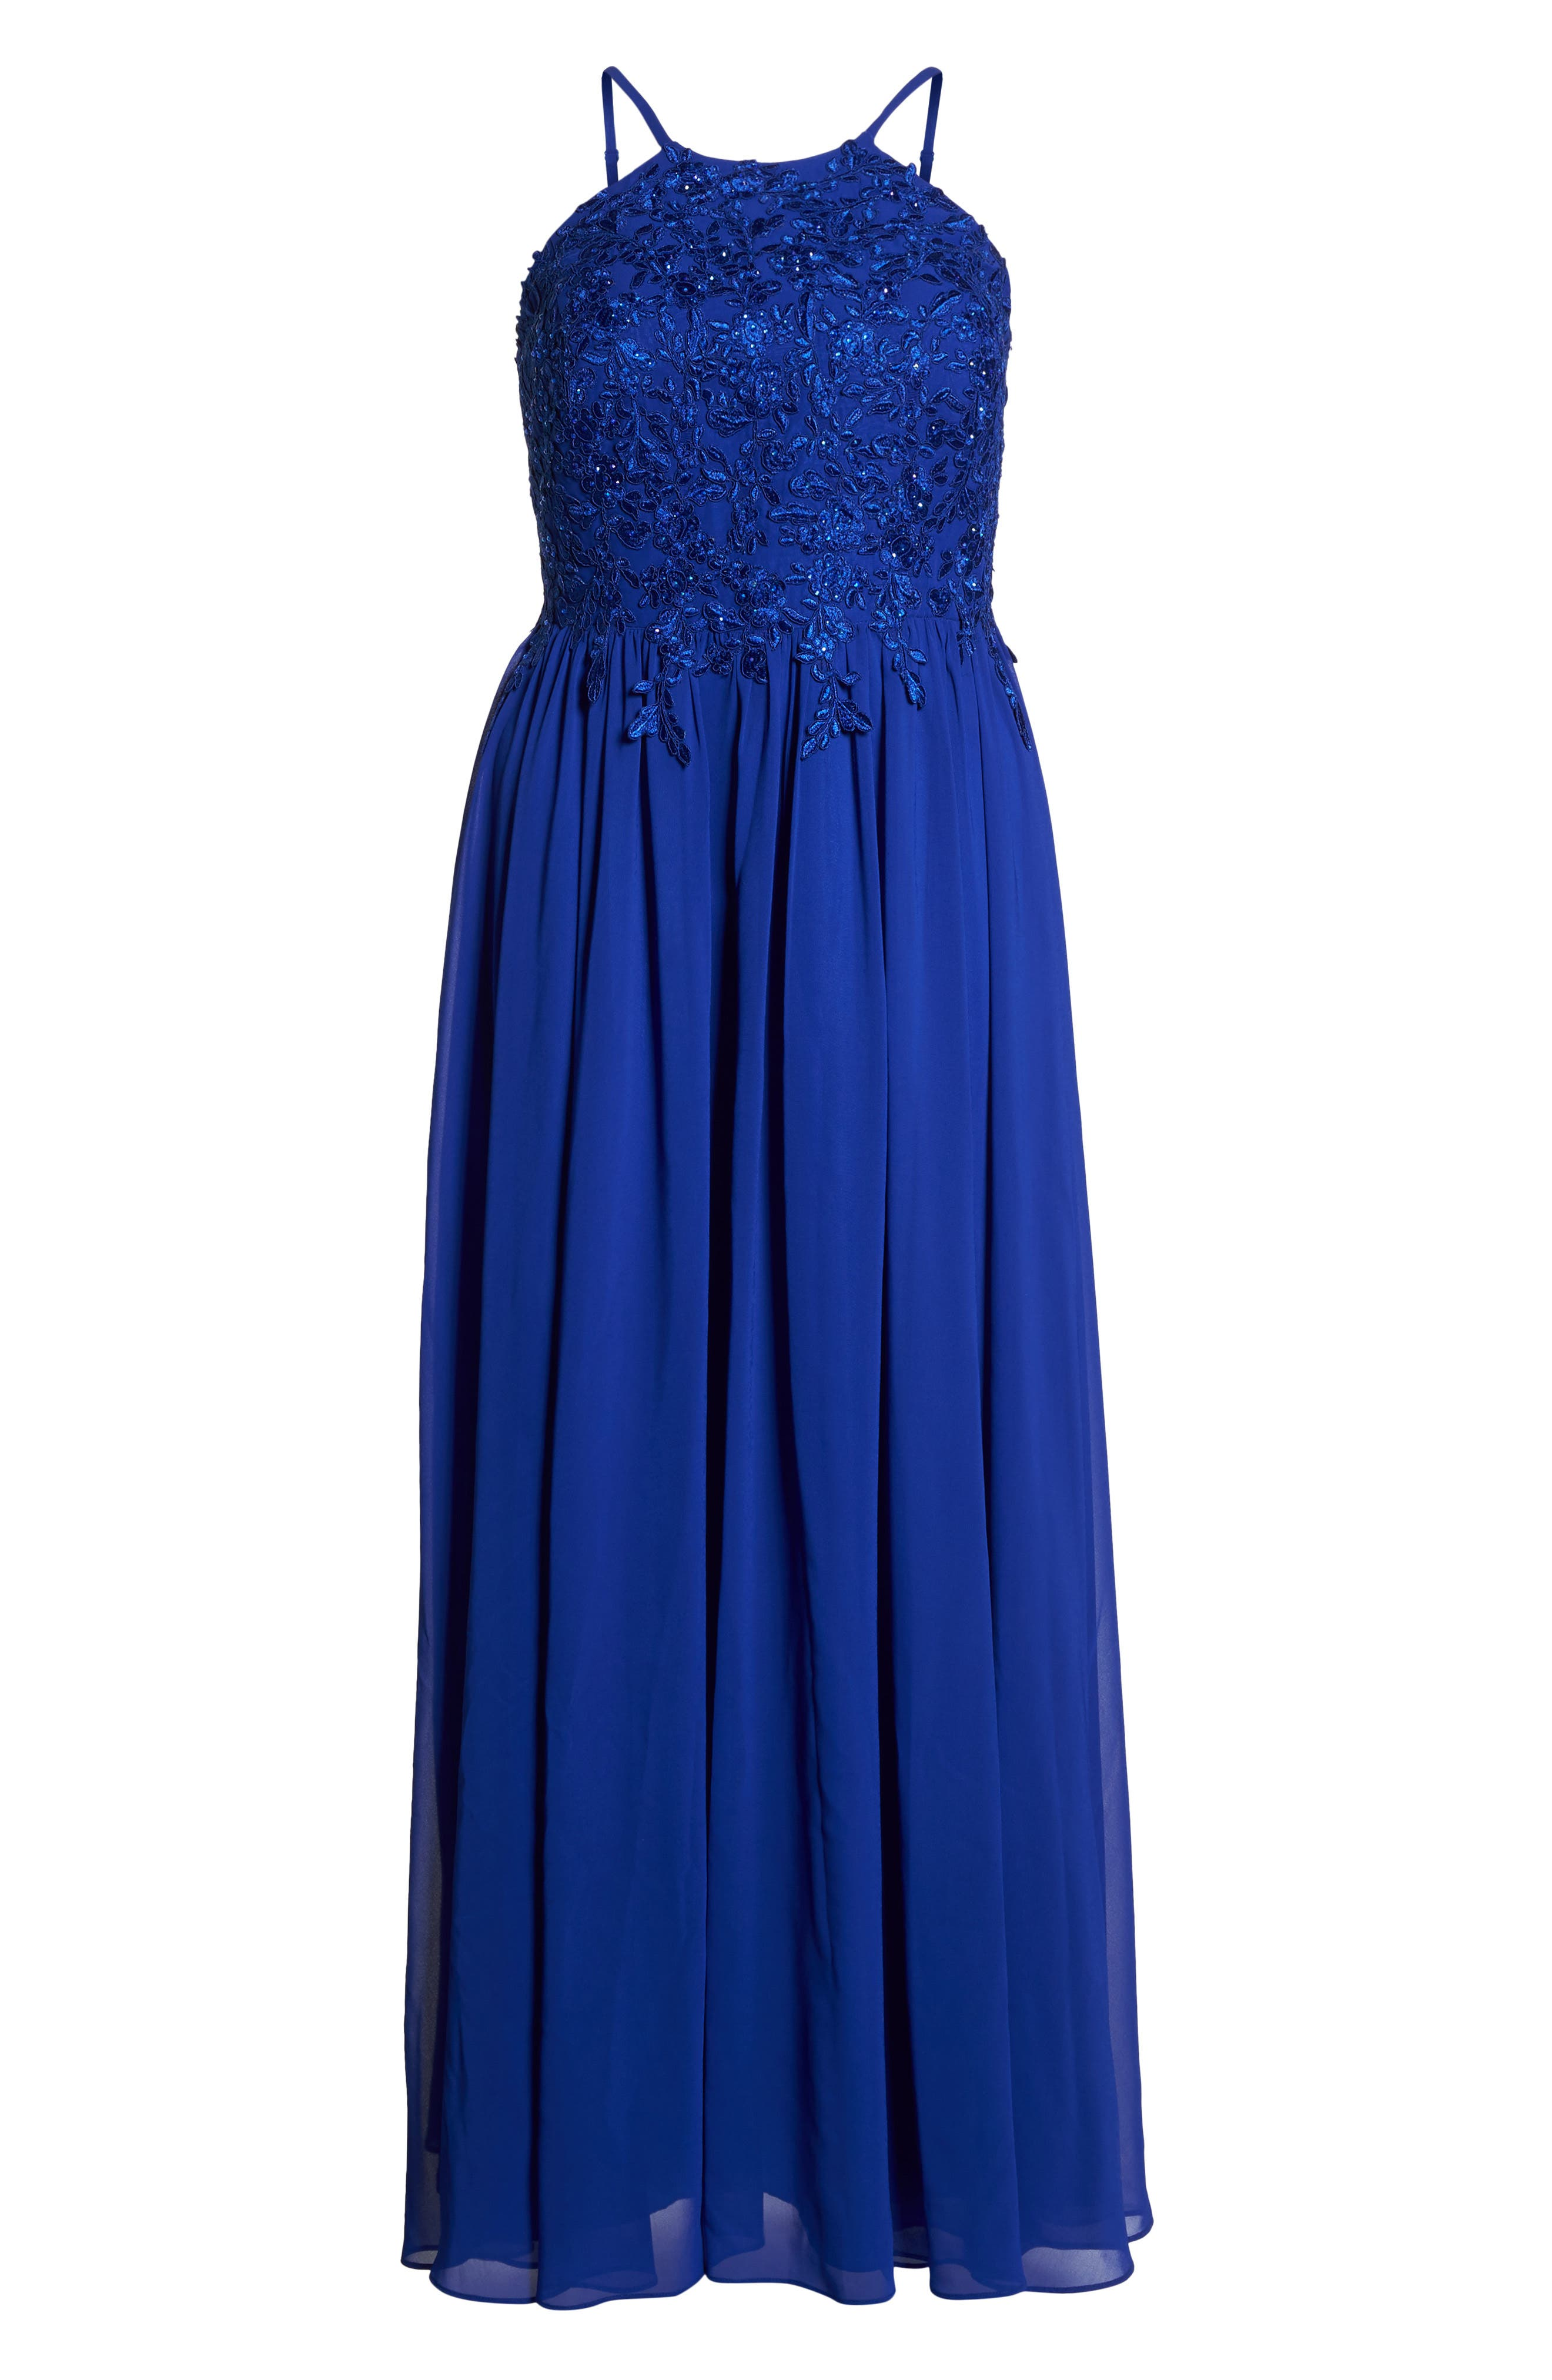 Embroidered Bodice Halter Top Maxi Dress,                             Alternate thumbnail 6, color,                             ROYAL